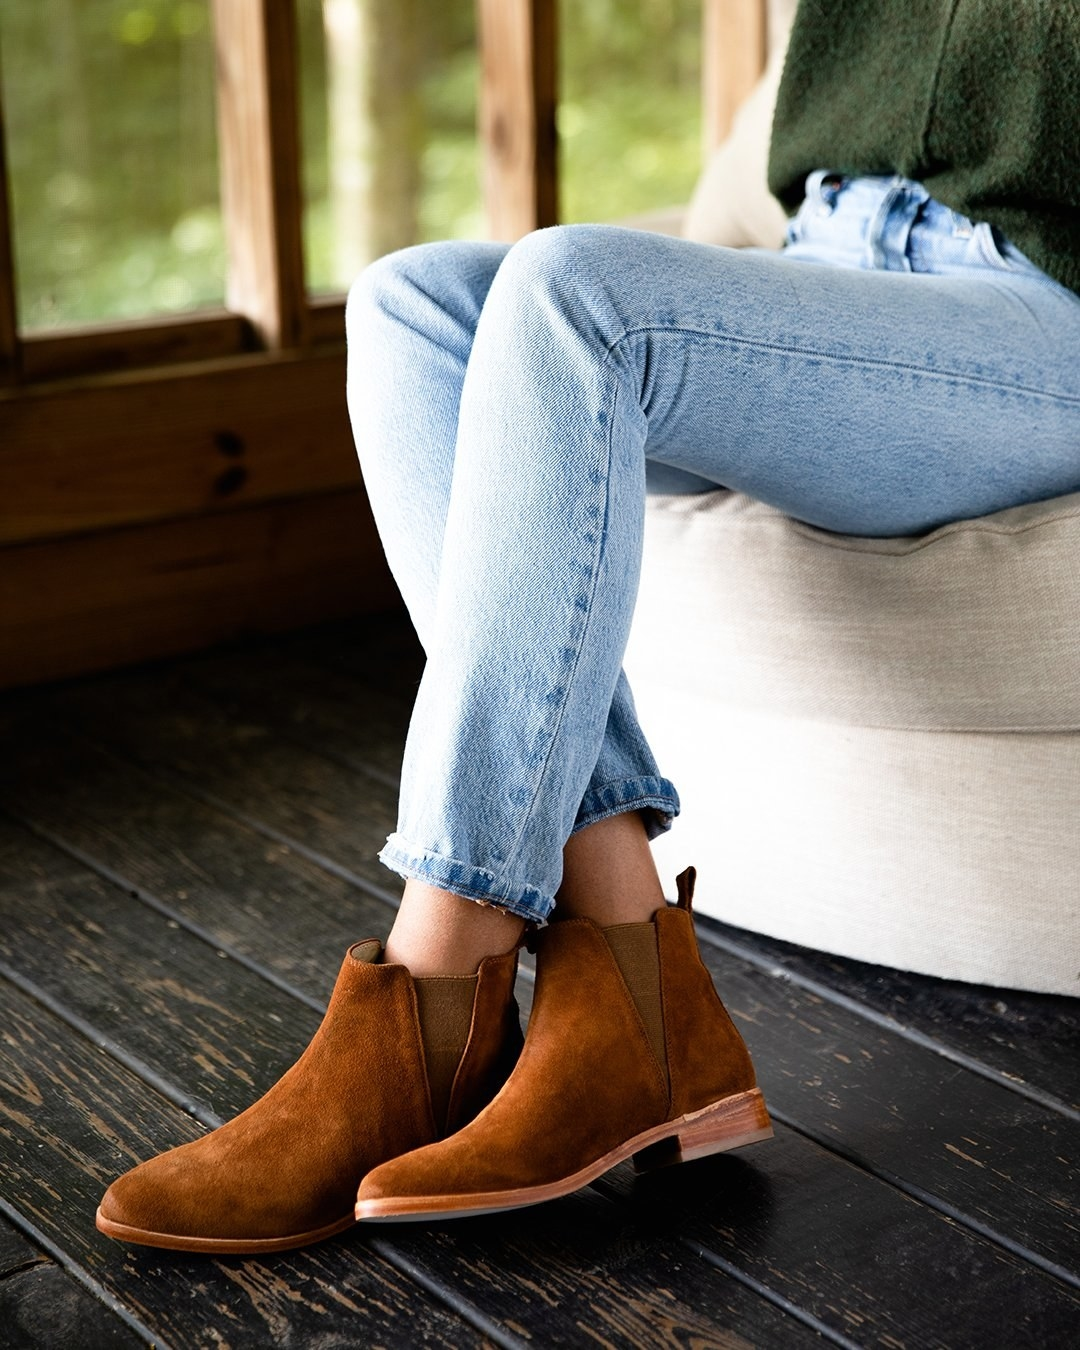 Model wearing a pair of brown suede Chelsea boots